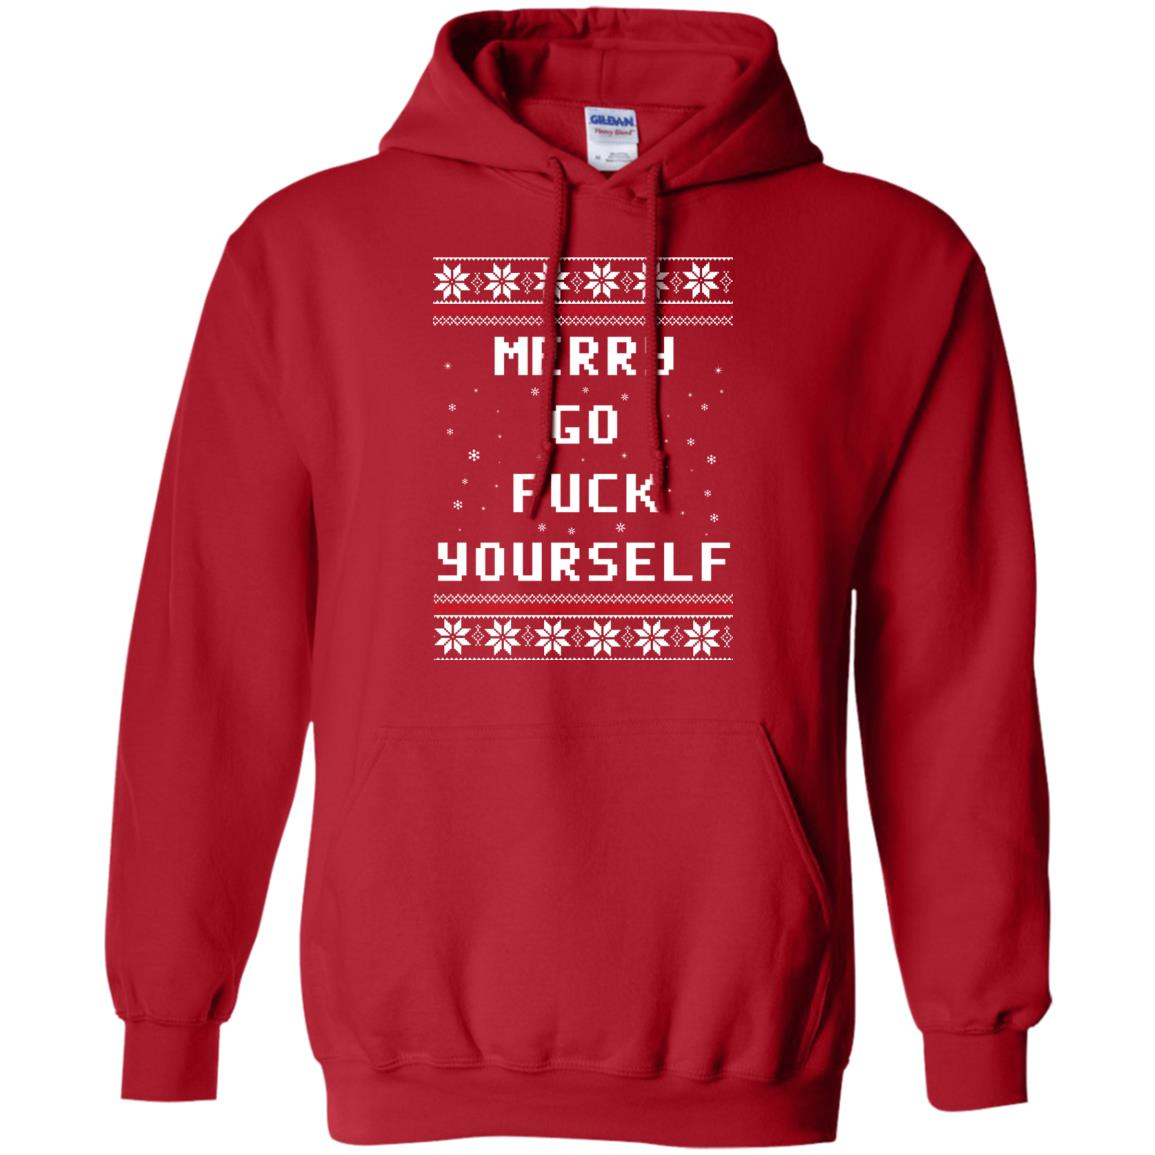 Merry Go Fuck Yourself Ugly Christmas Sweater, Hoodie - Rockatee